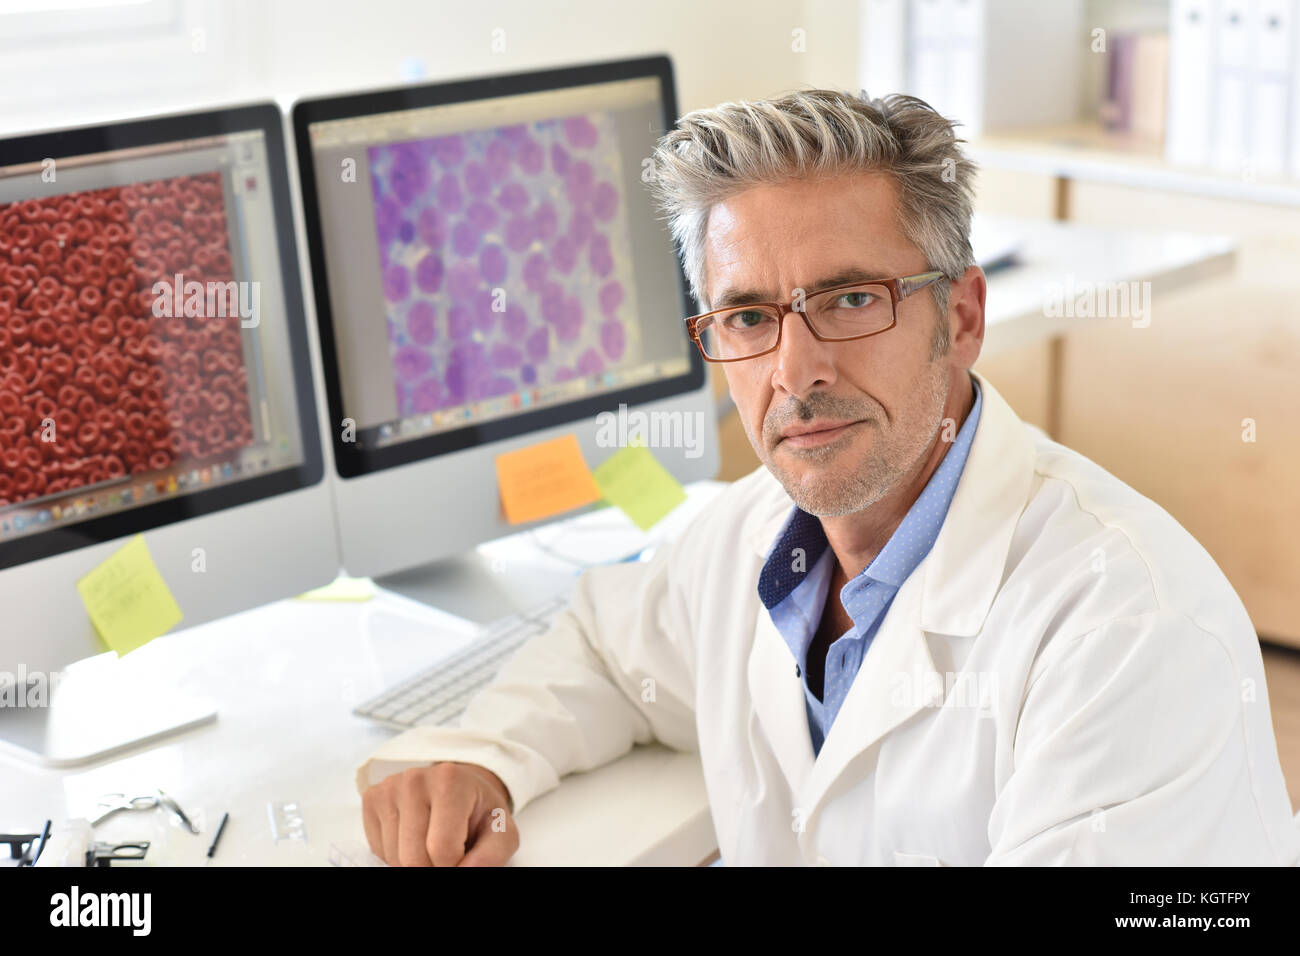 Portrait of microbiology scientist in office - Stock Image